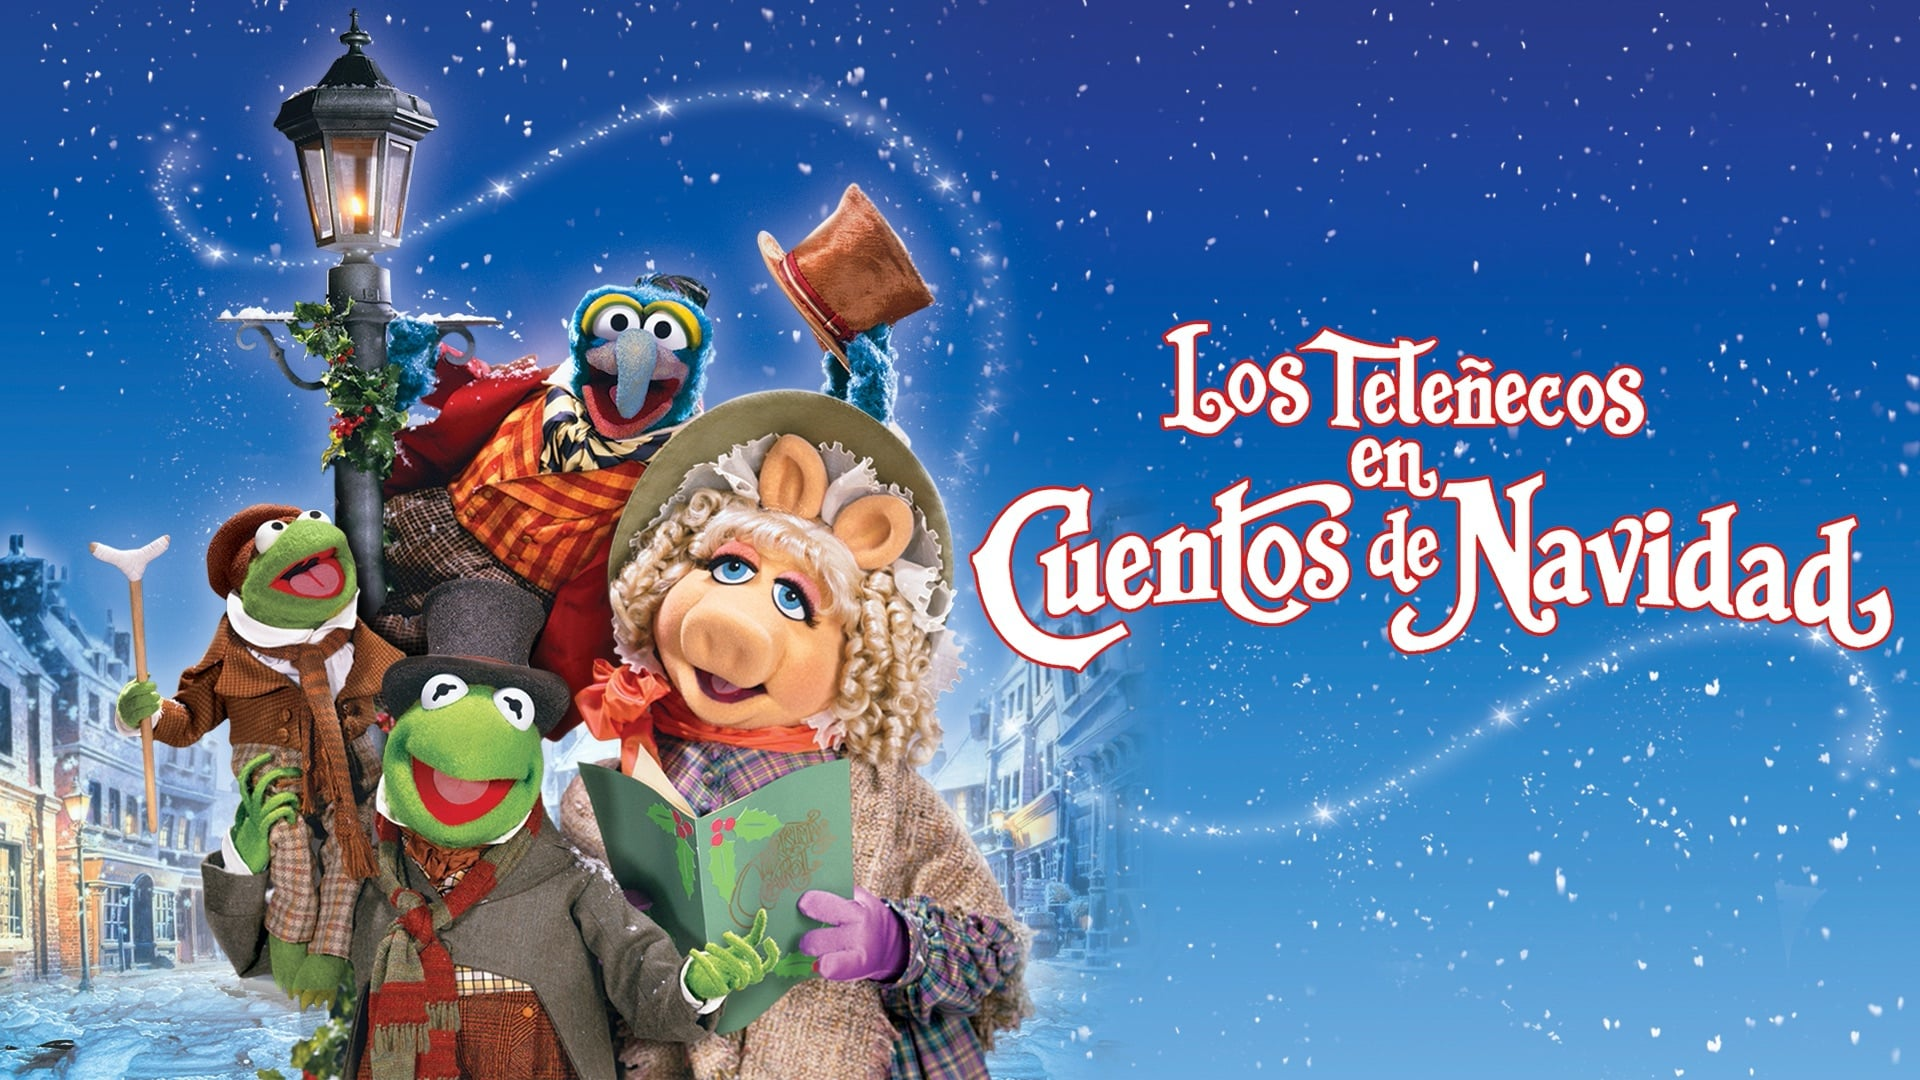 Download The Muppet Christmas Carol (1992)10437 Movie for free - Watch or Stream Free HD ...